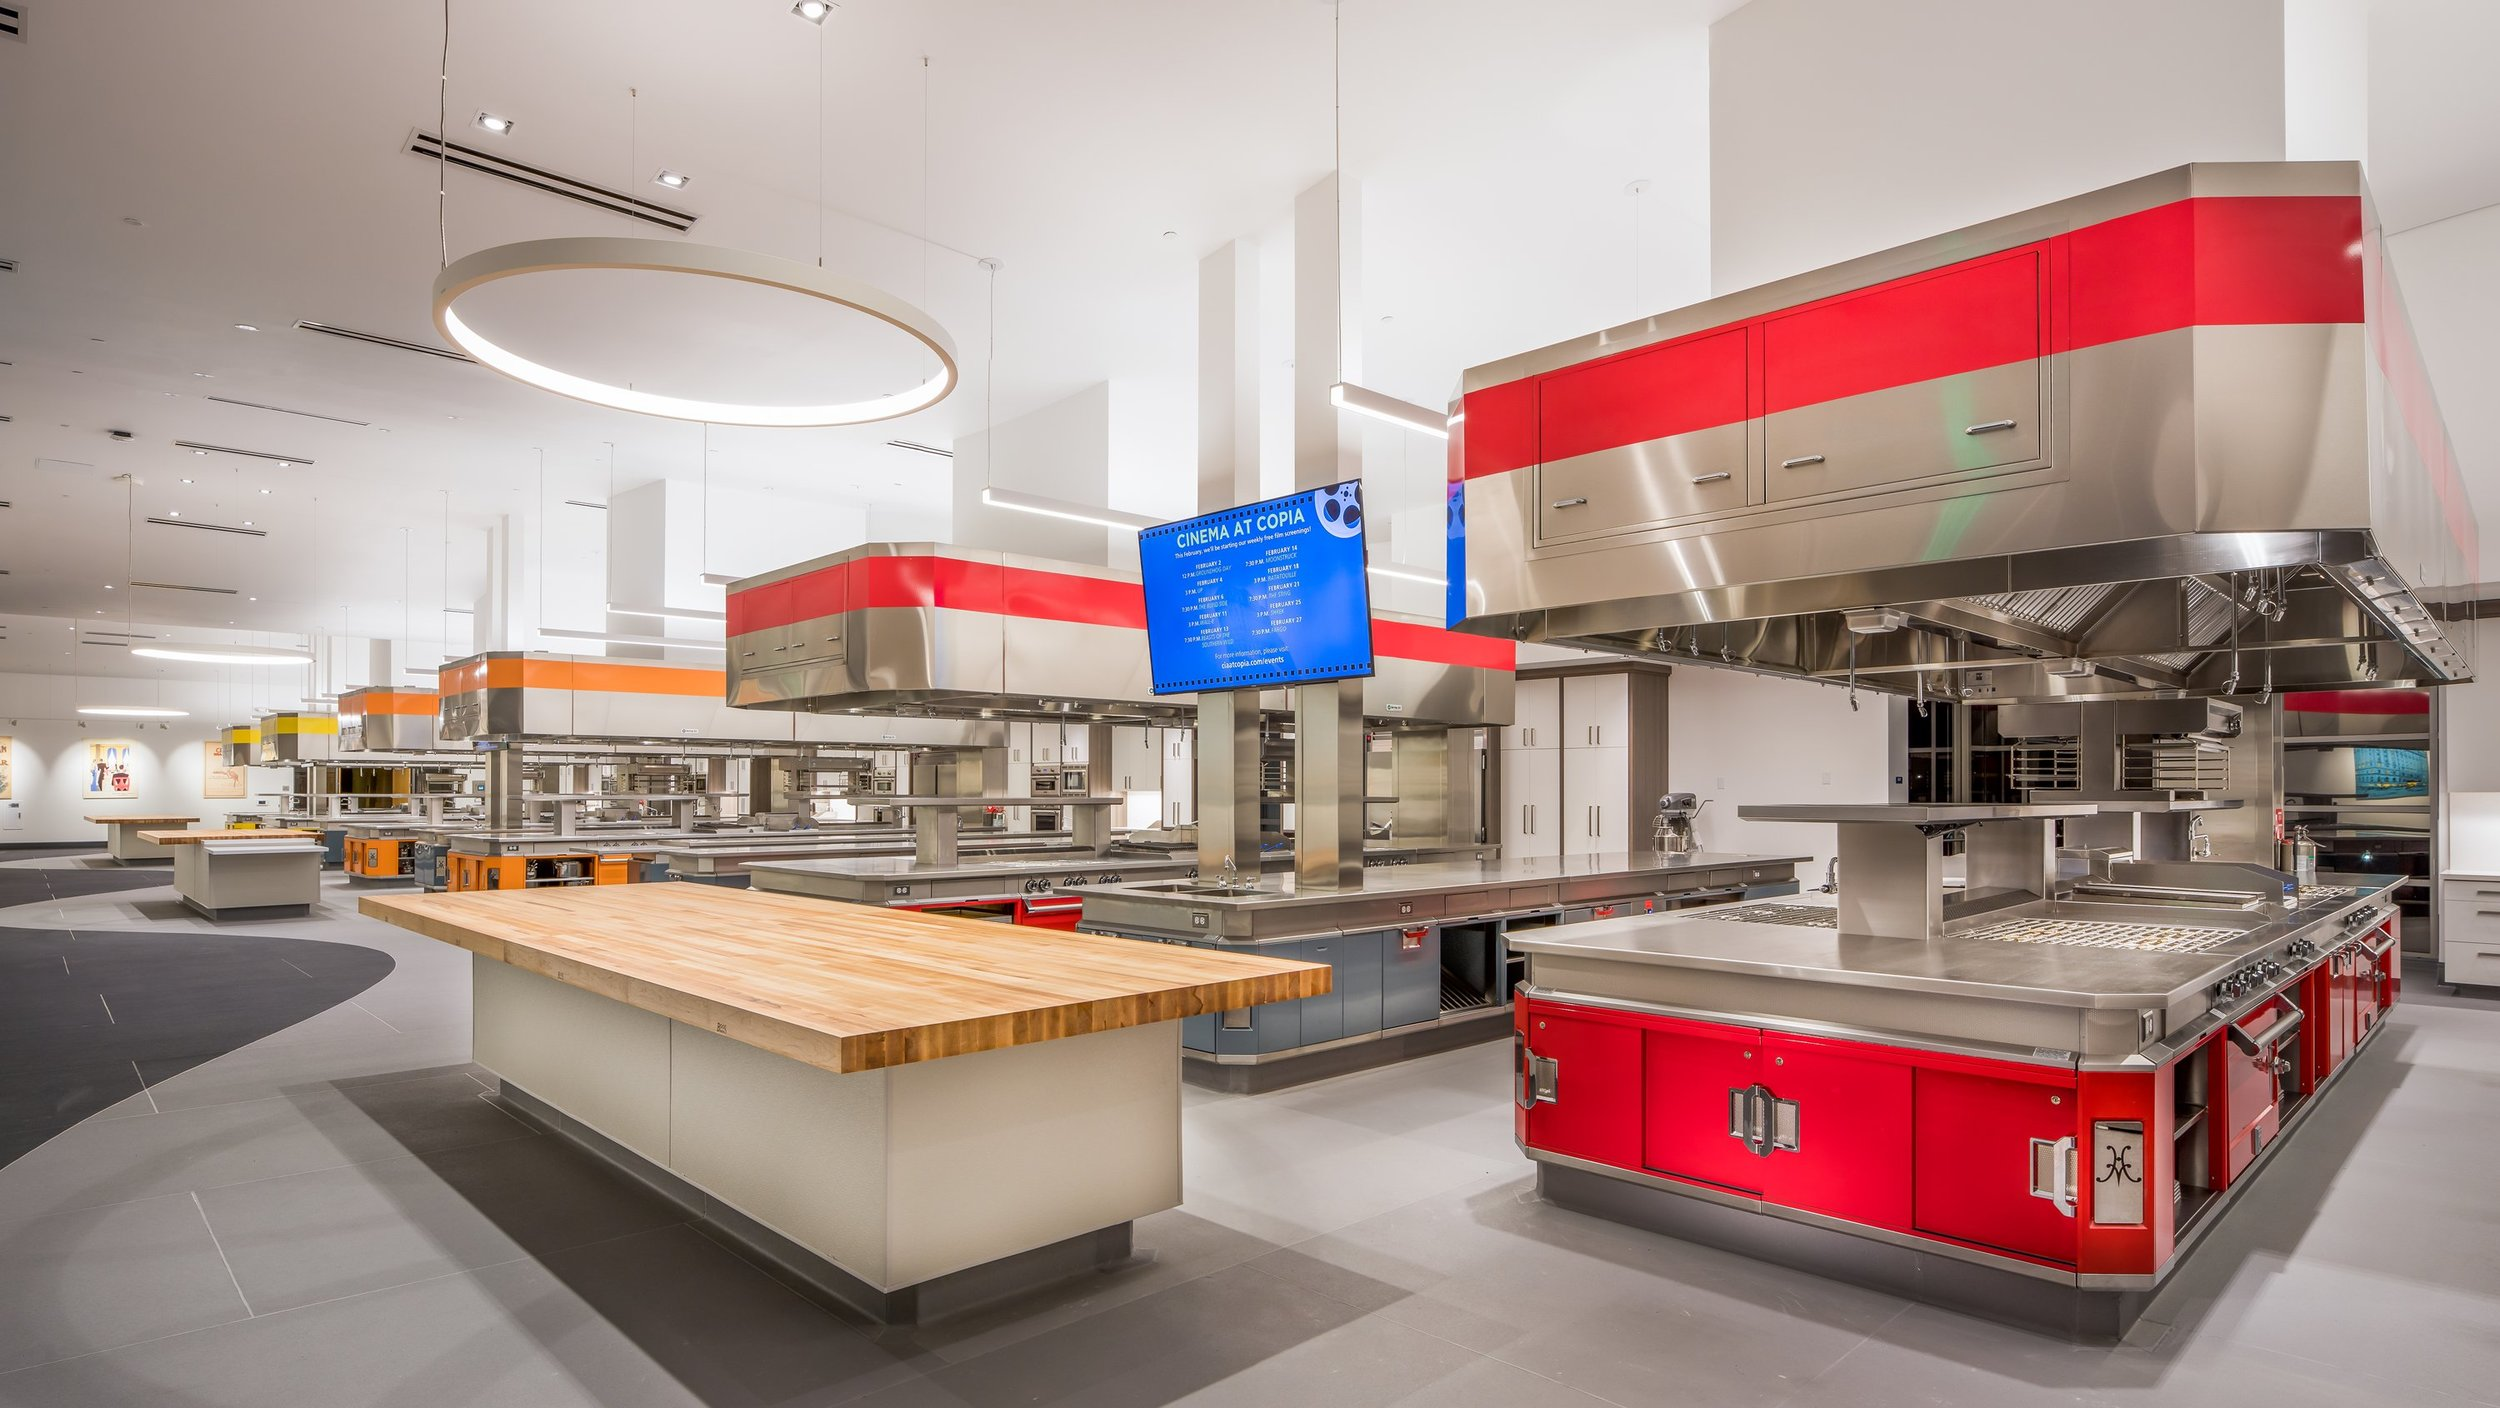 Copia's new 9,000 square-foot Hestan Kitchen